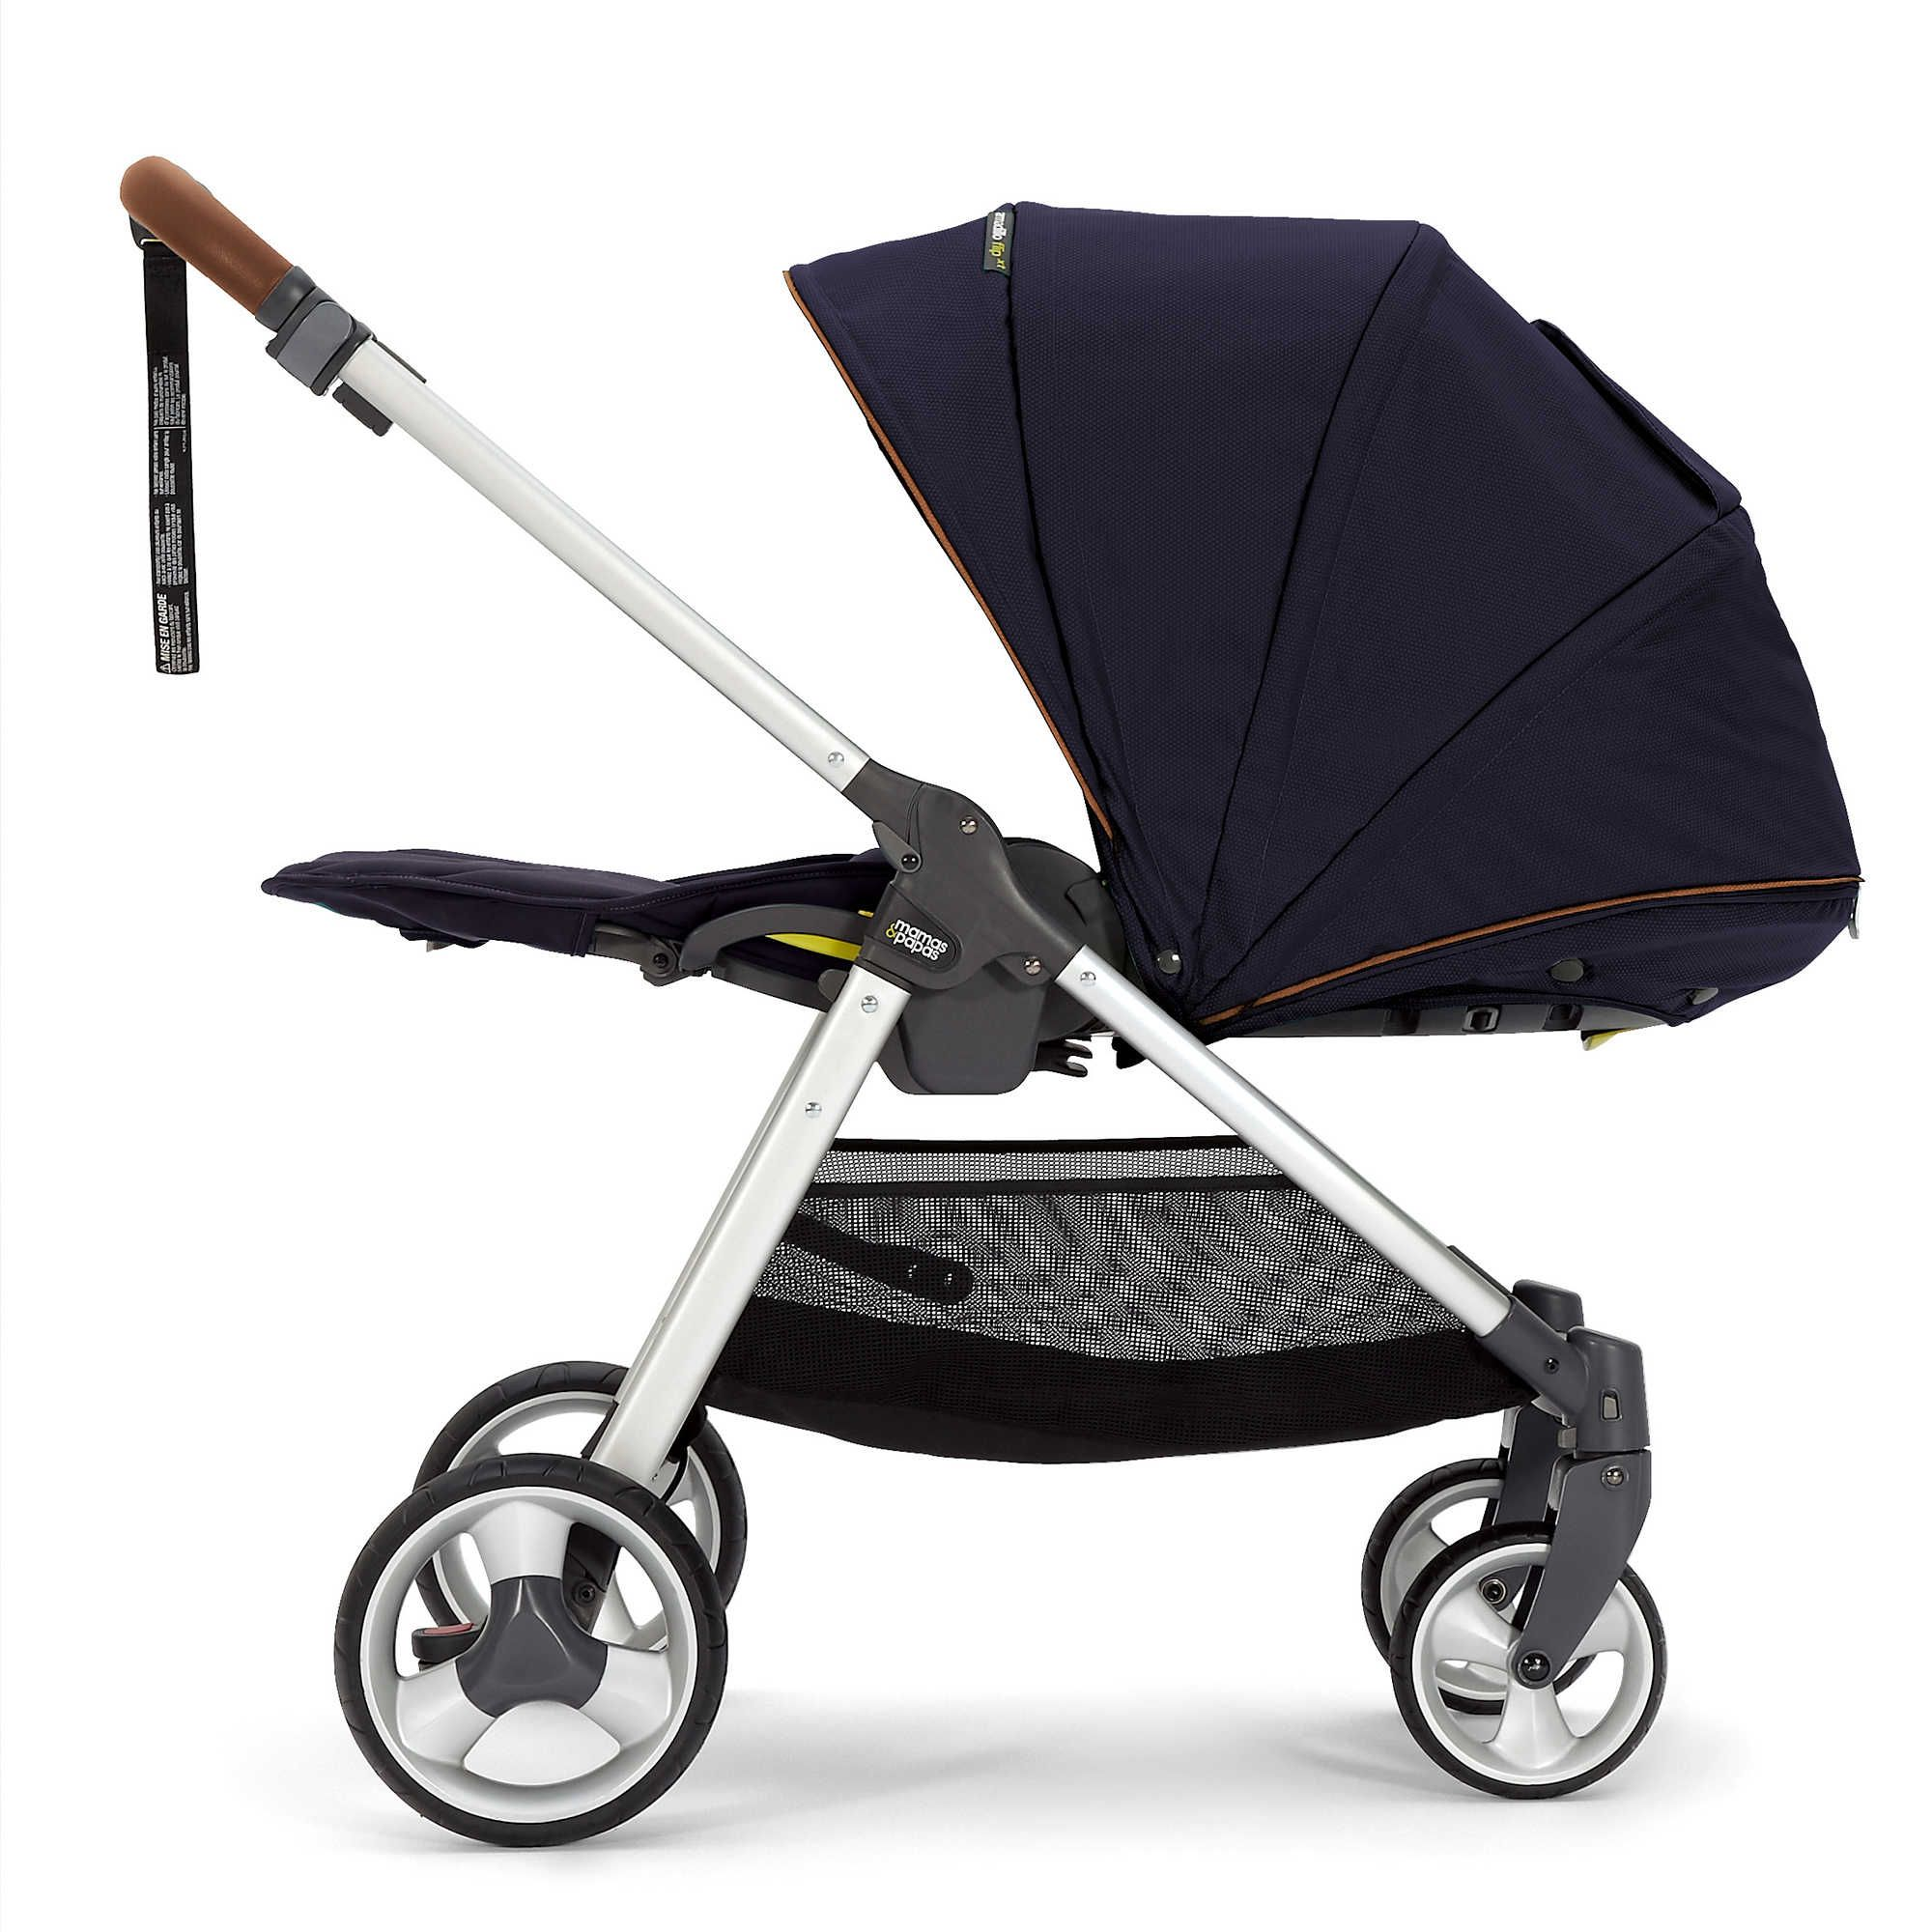 Designed for city or countryside escapades with baby the pact Armadillo Flip XT Stroller features an innovative reversible seat chunky wheels with